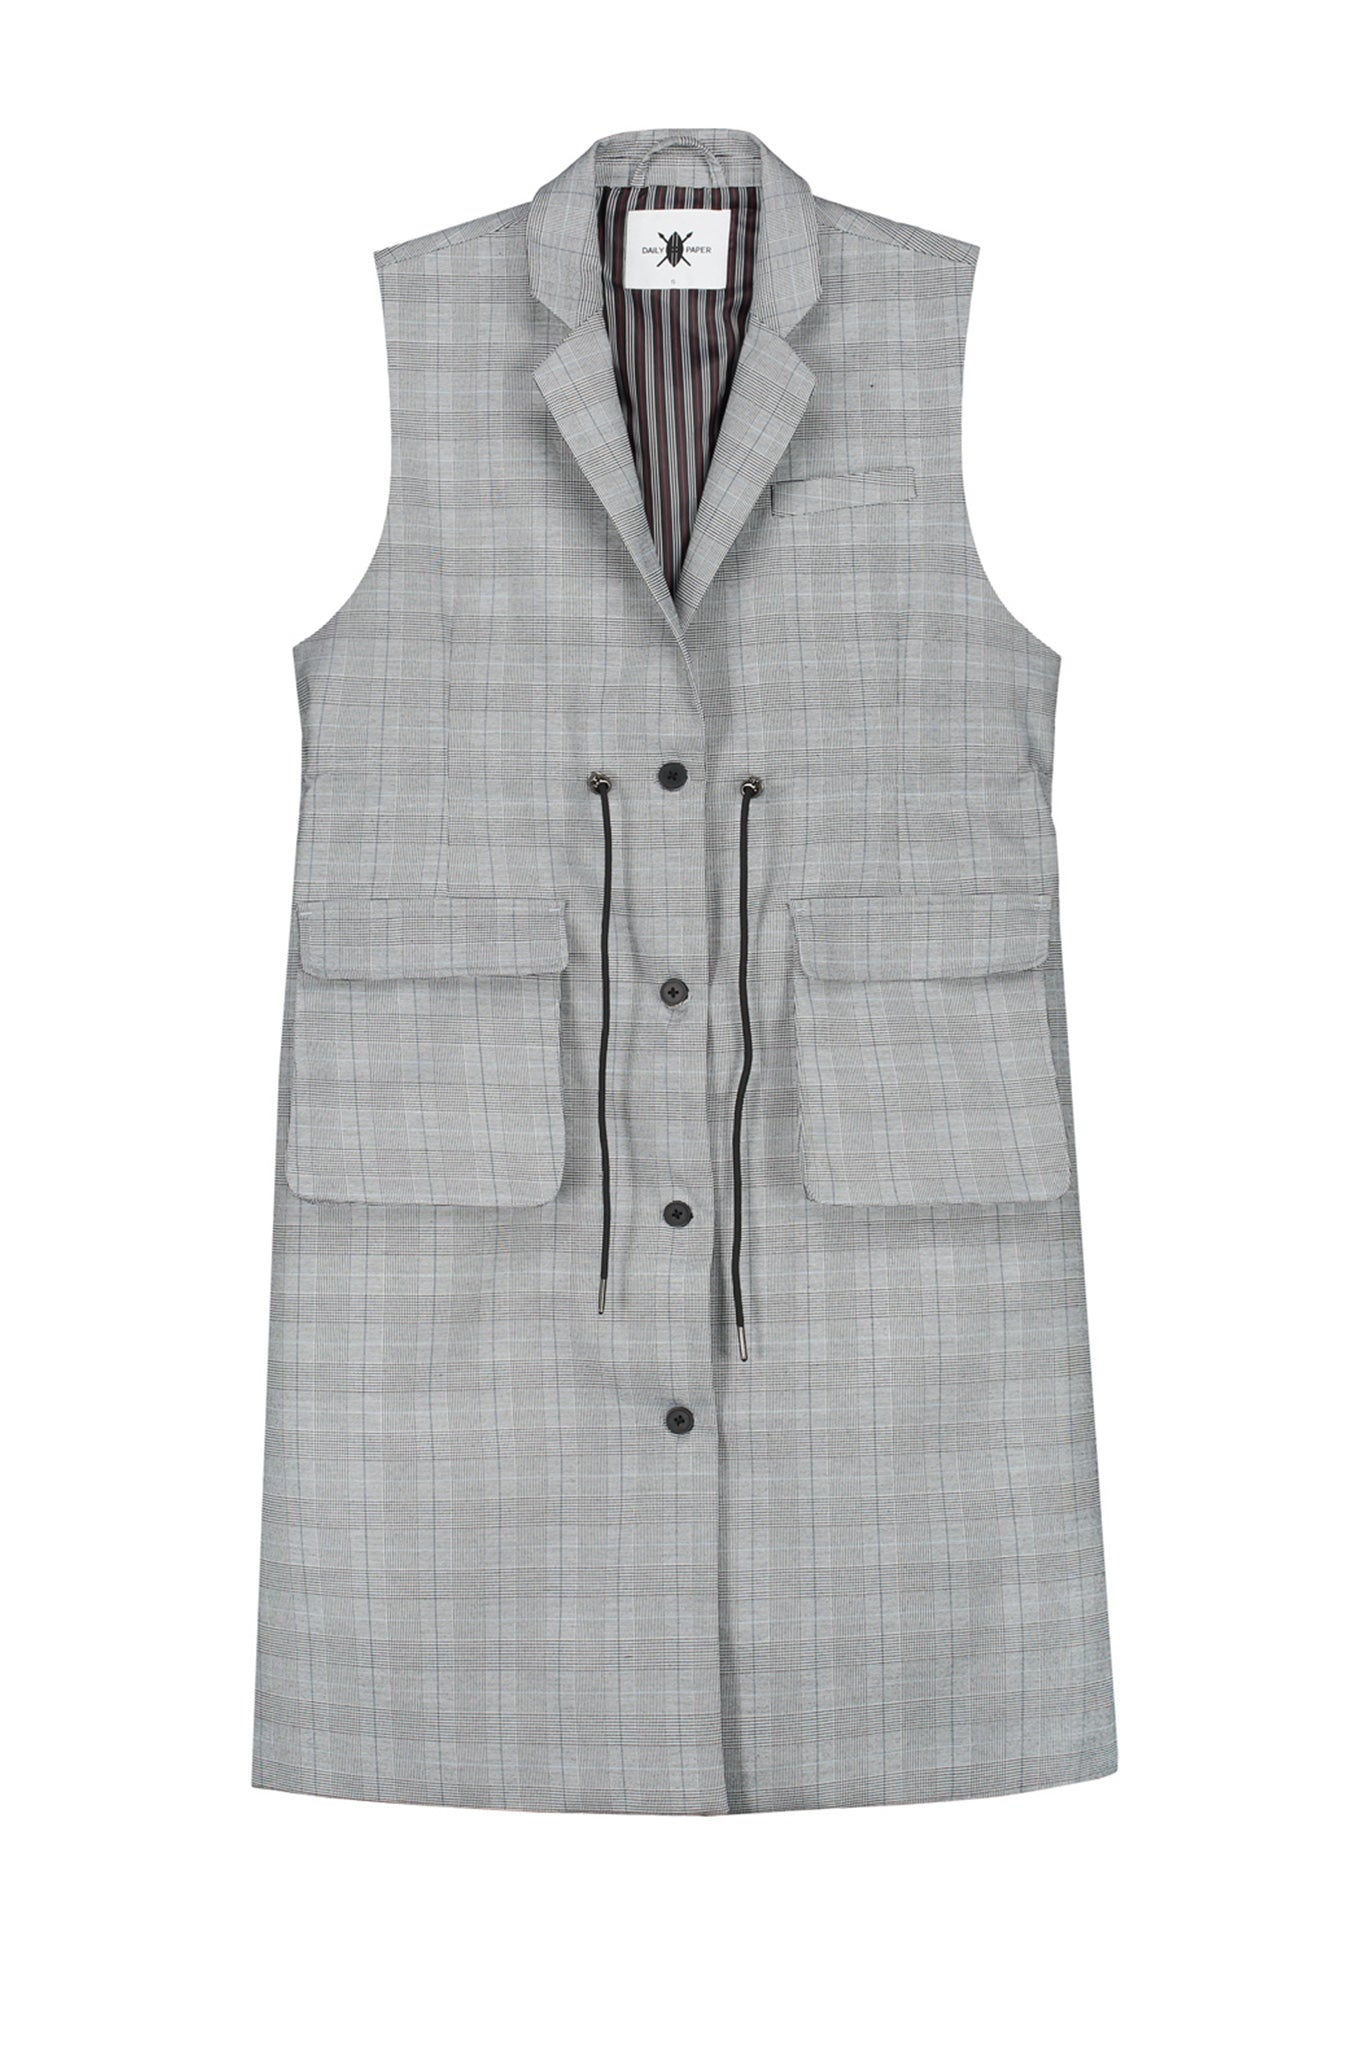 womens grey vest blazer by Daily Paper